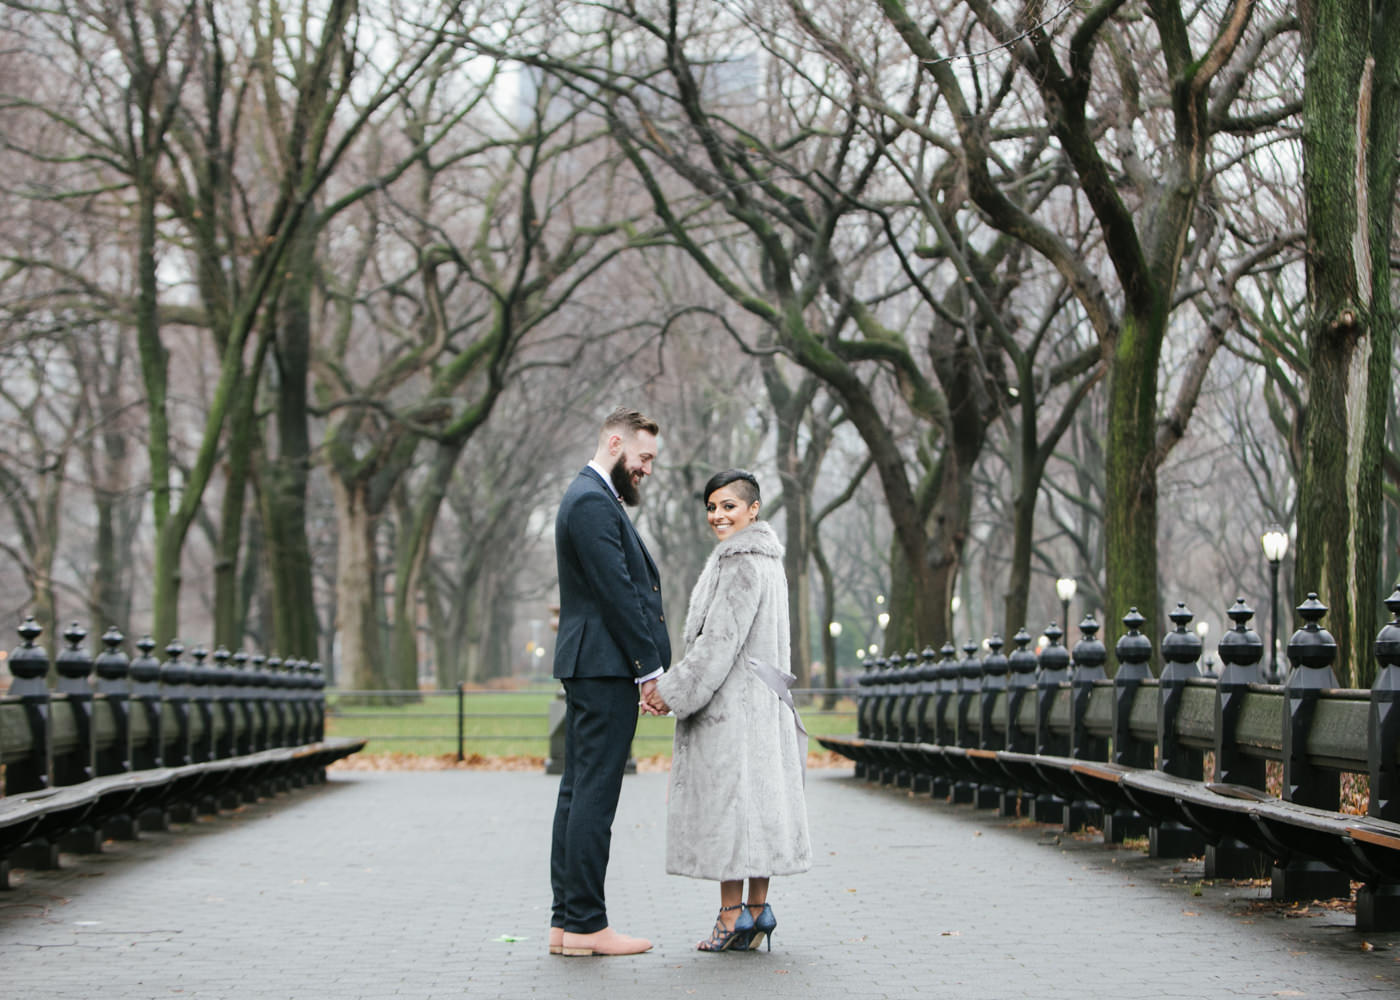 Central-park-wedding-by-Tanya-Isaeva-111.jpg